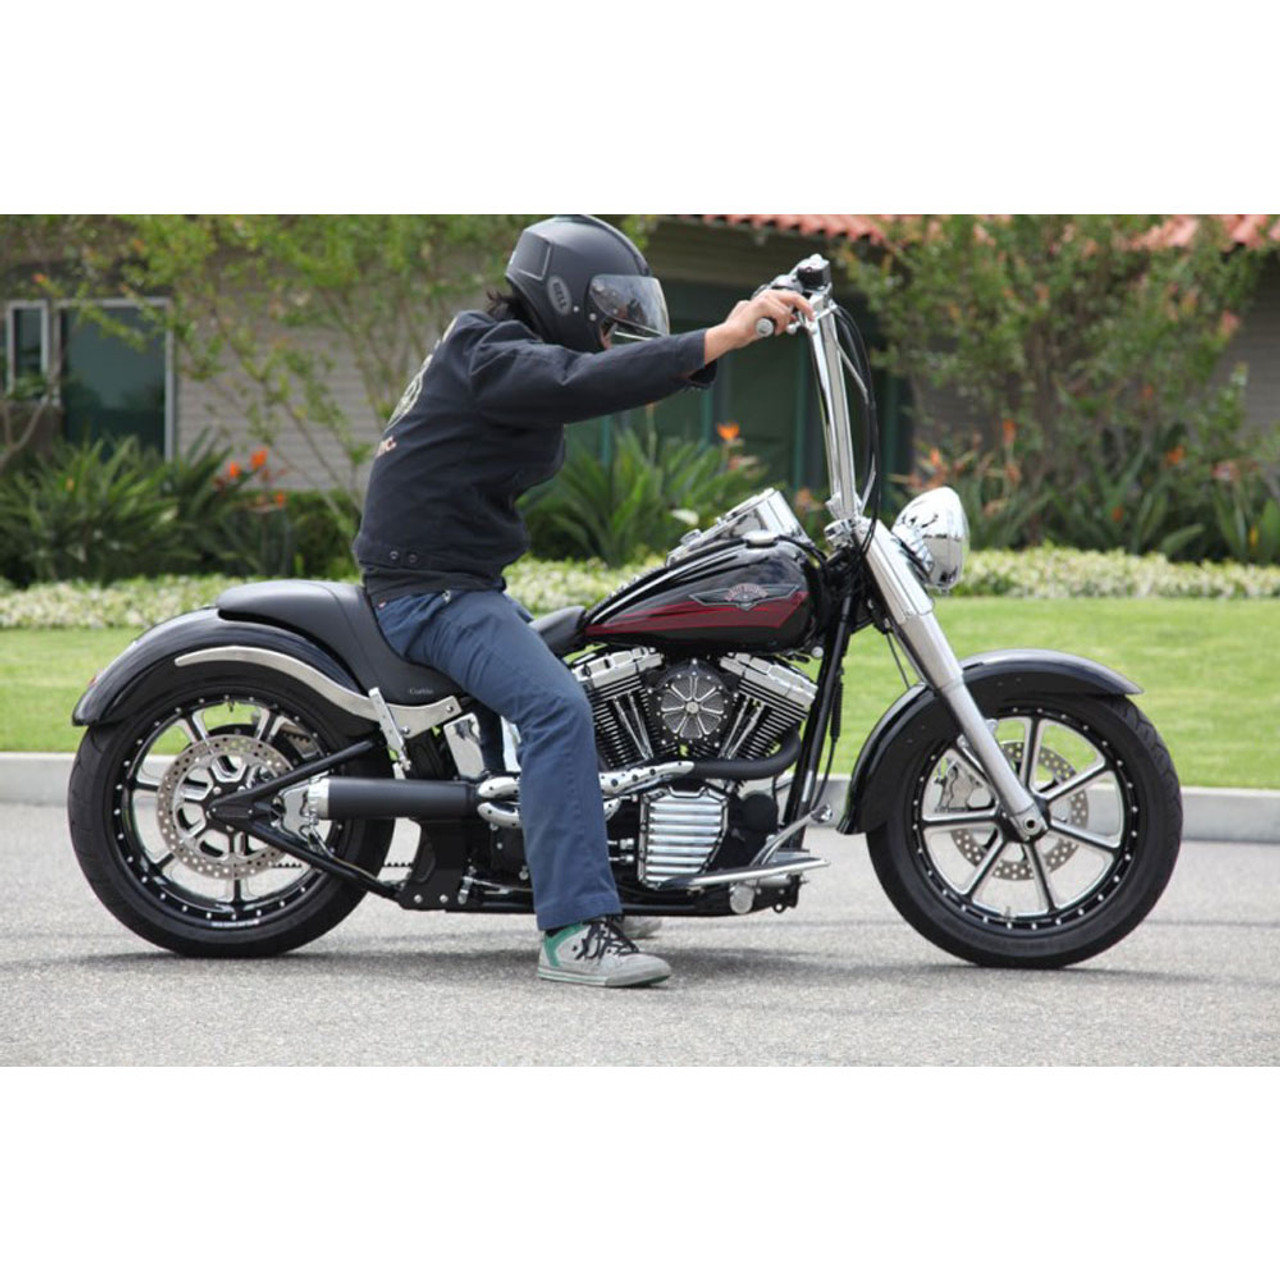 Roland Sands 1 1 4 King Ape Hangers Handlebars For Harley Get Lowered Cycles